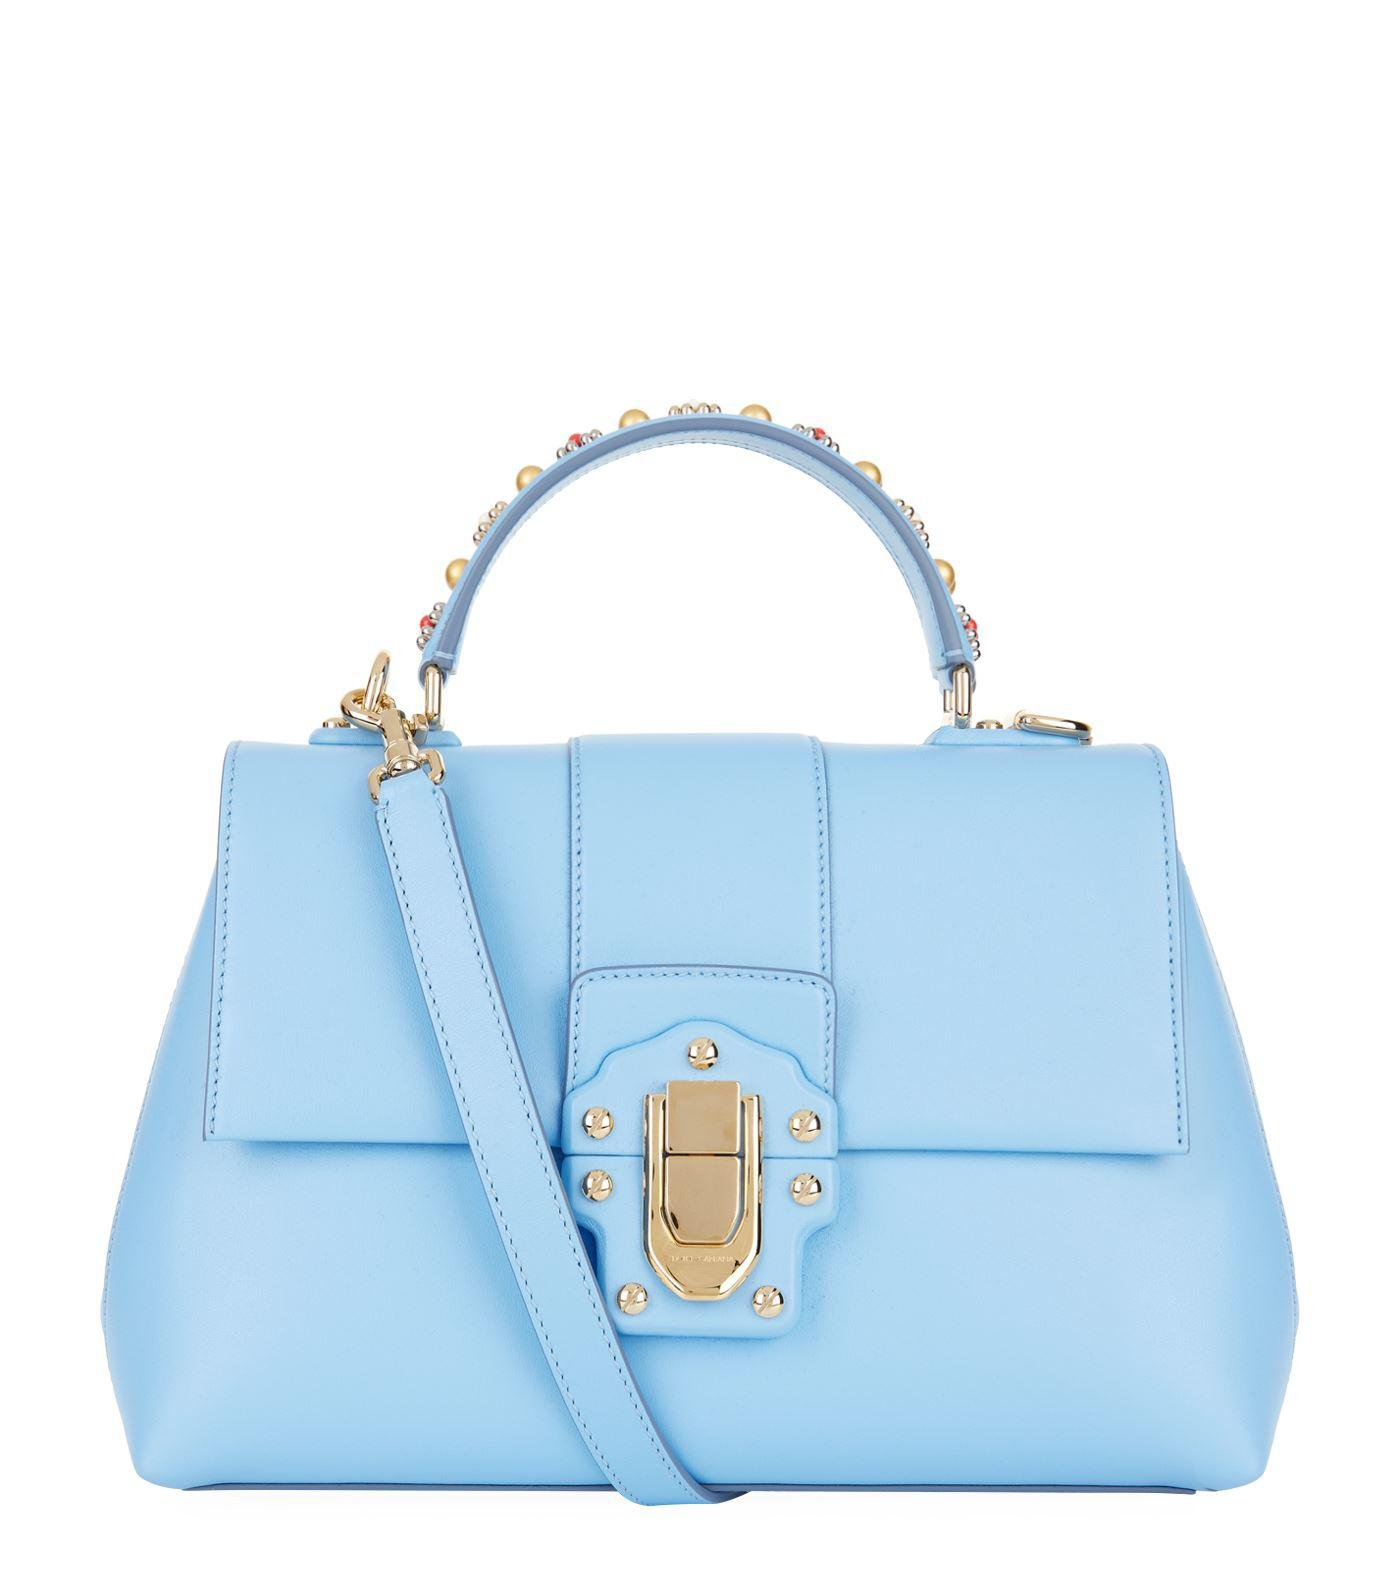 Dolce & Gabbana Lucia top handle bag PcNqDOKJyb